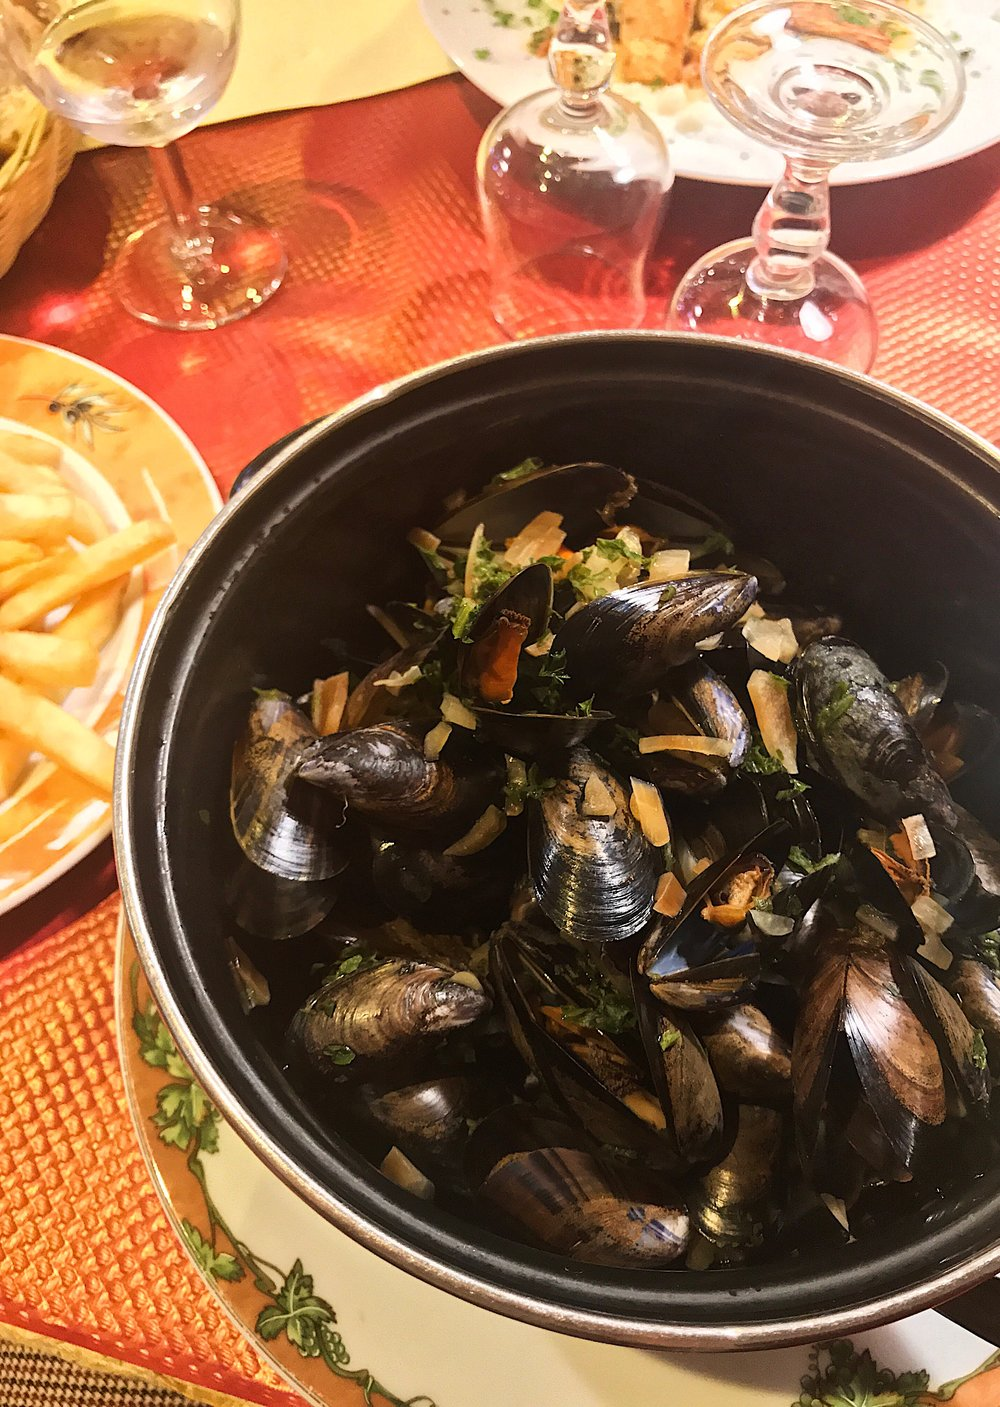 Moules frites in Épernay